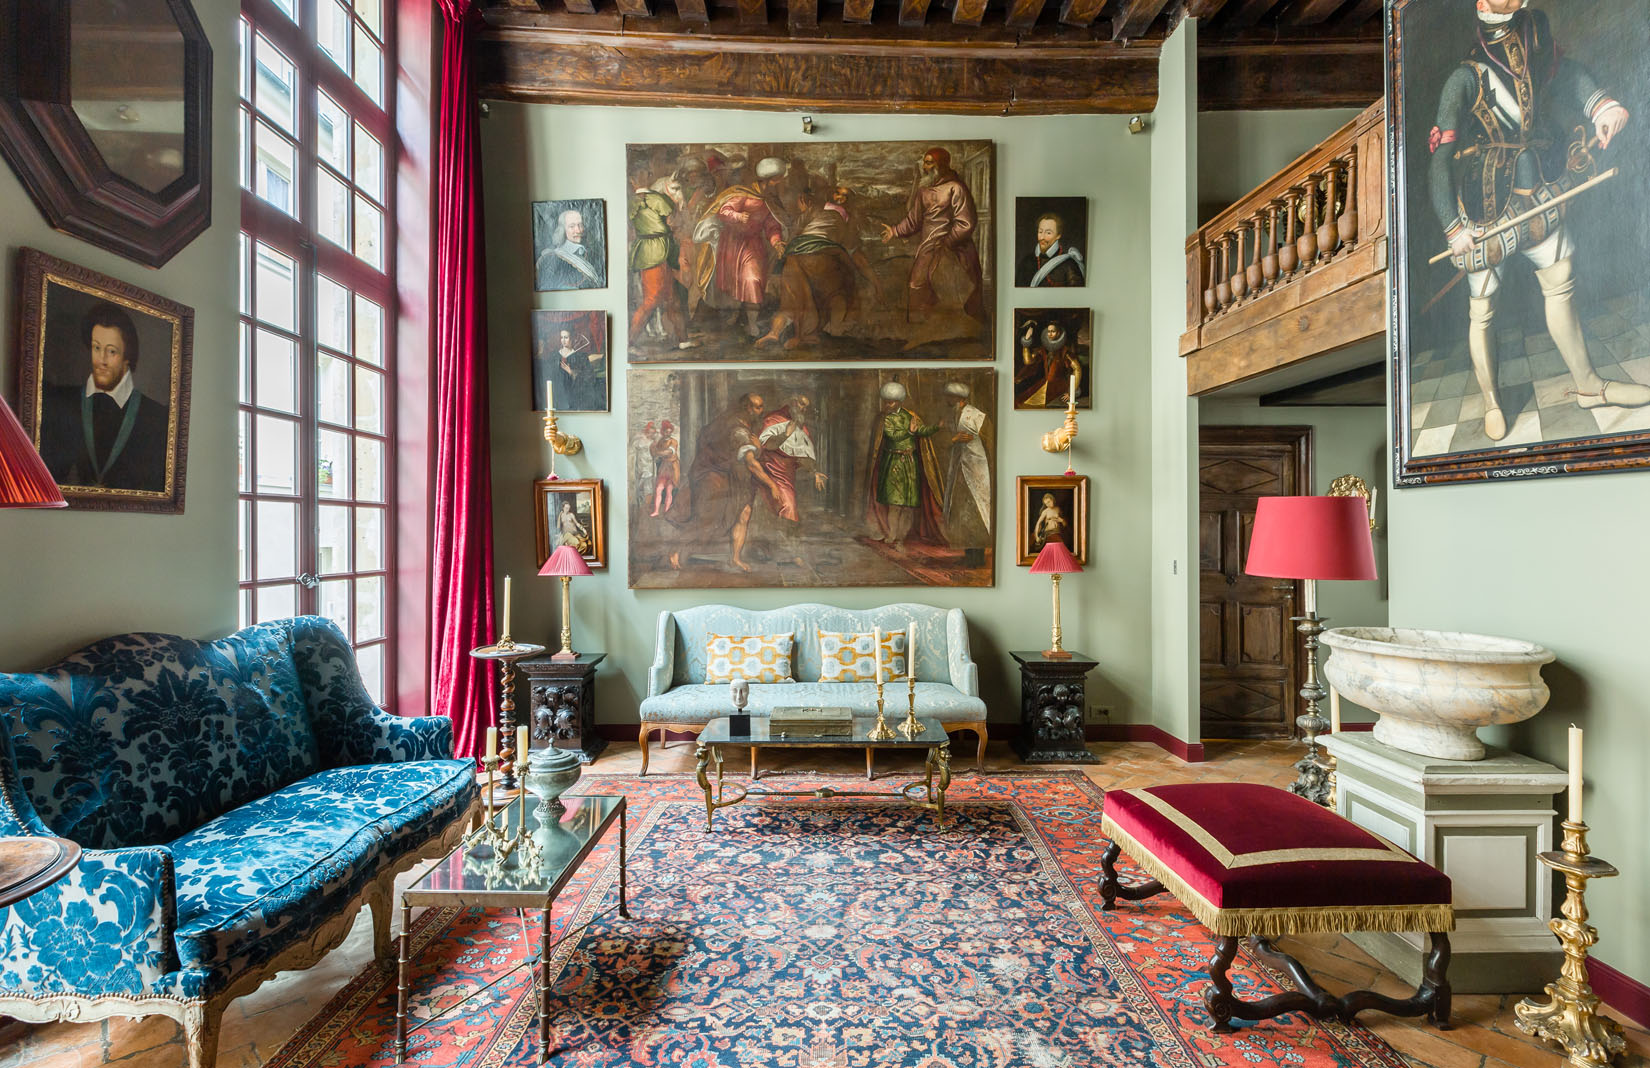 This maximalist Paris apartment is an antidote to minimalism